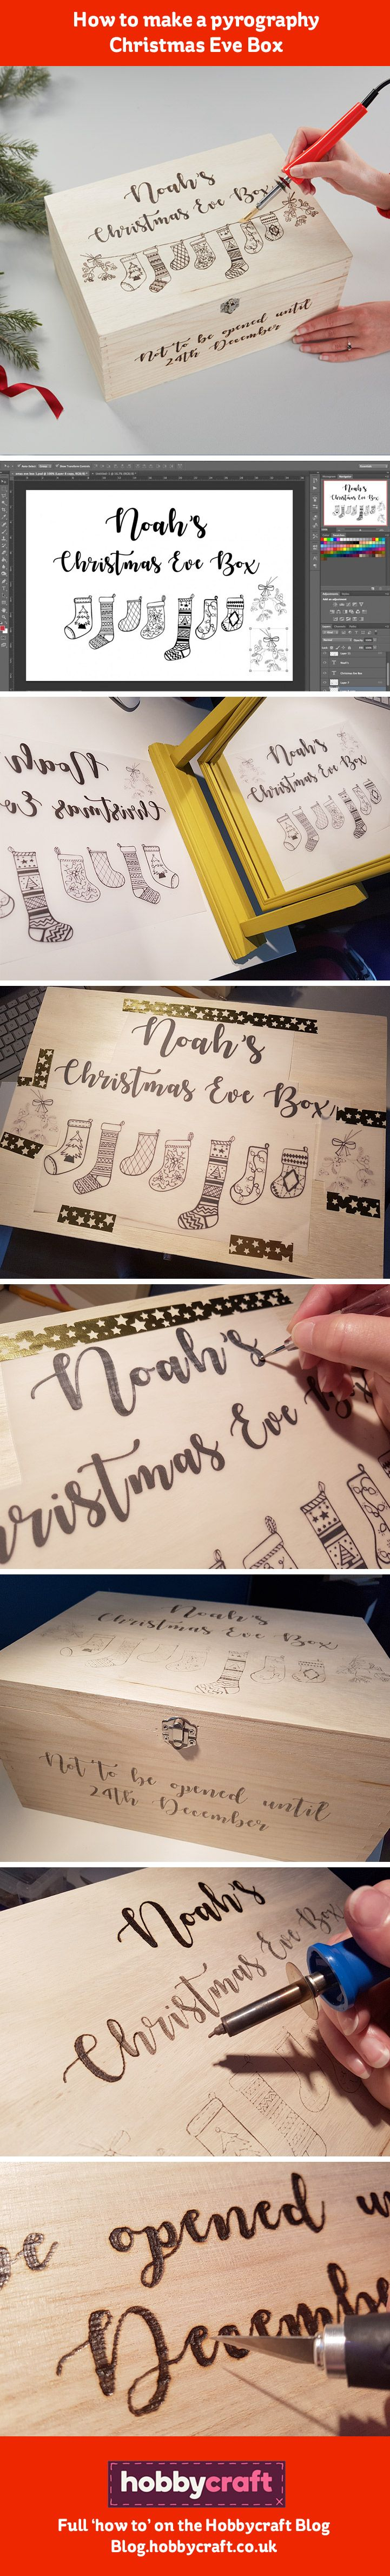 Create your own beautiful personalised Christmas Eve Box with a bit of pyrography. This traditional 'wood burning' technique uses a special tool to burn your design into the wood – which means you can personalise it to the max, using your favourite fonts and images! #ChristmasEveBox #ChristmasEveBoxIdeas #HowtomakeachristmasEveBox #Pygrography #PyrographyIdeas